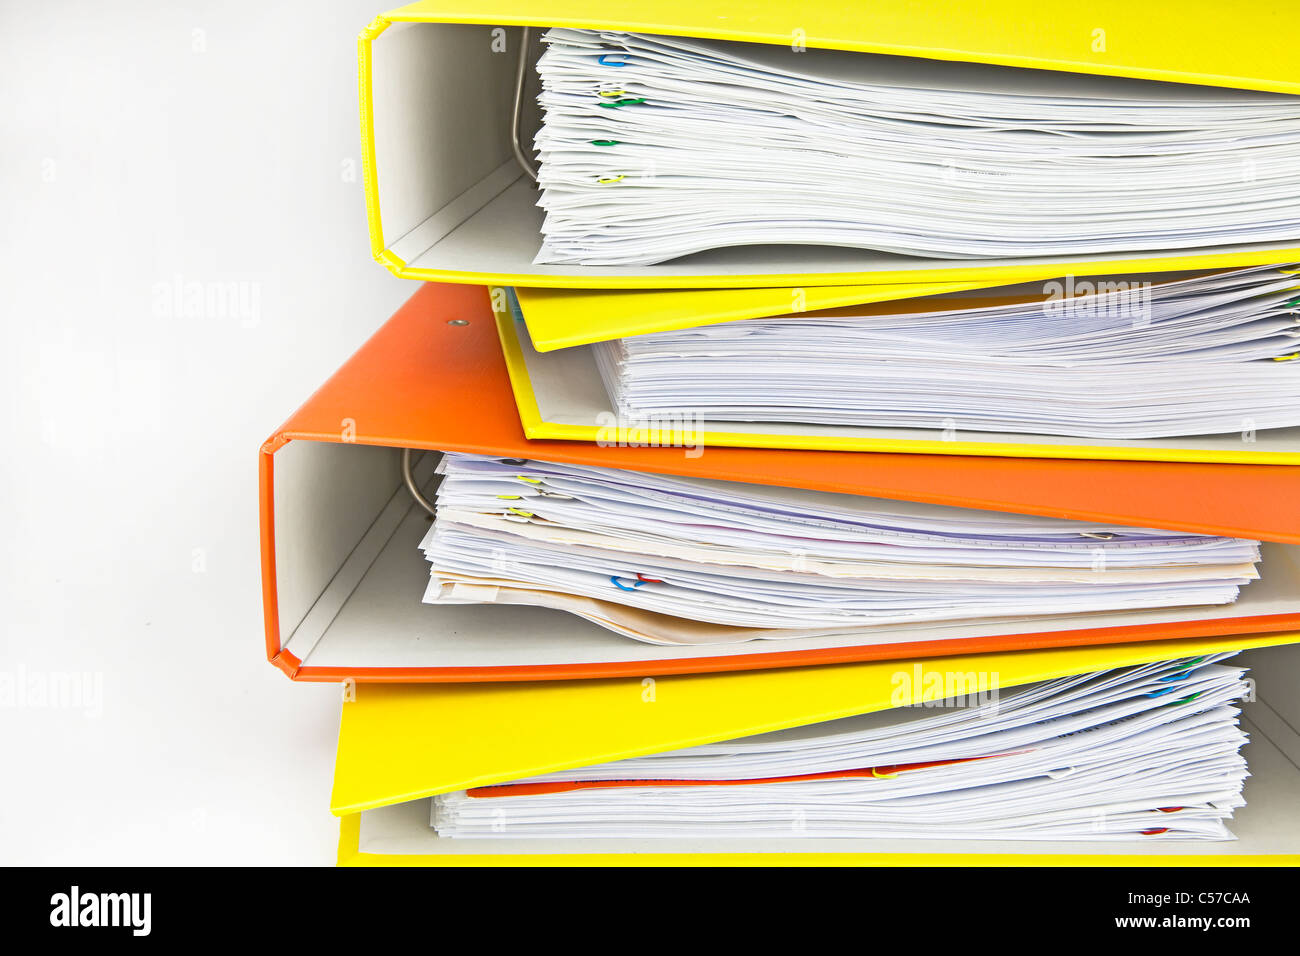 yellow and orange file folders stacked on each other - Stock Image